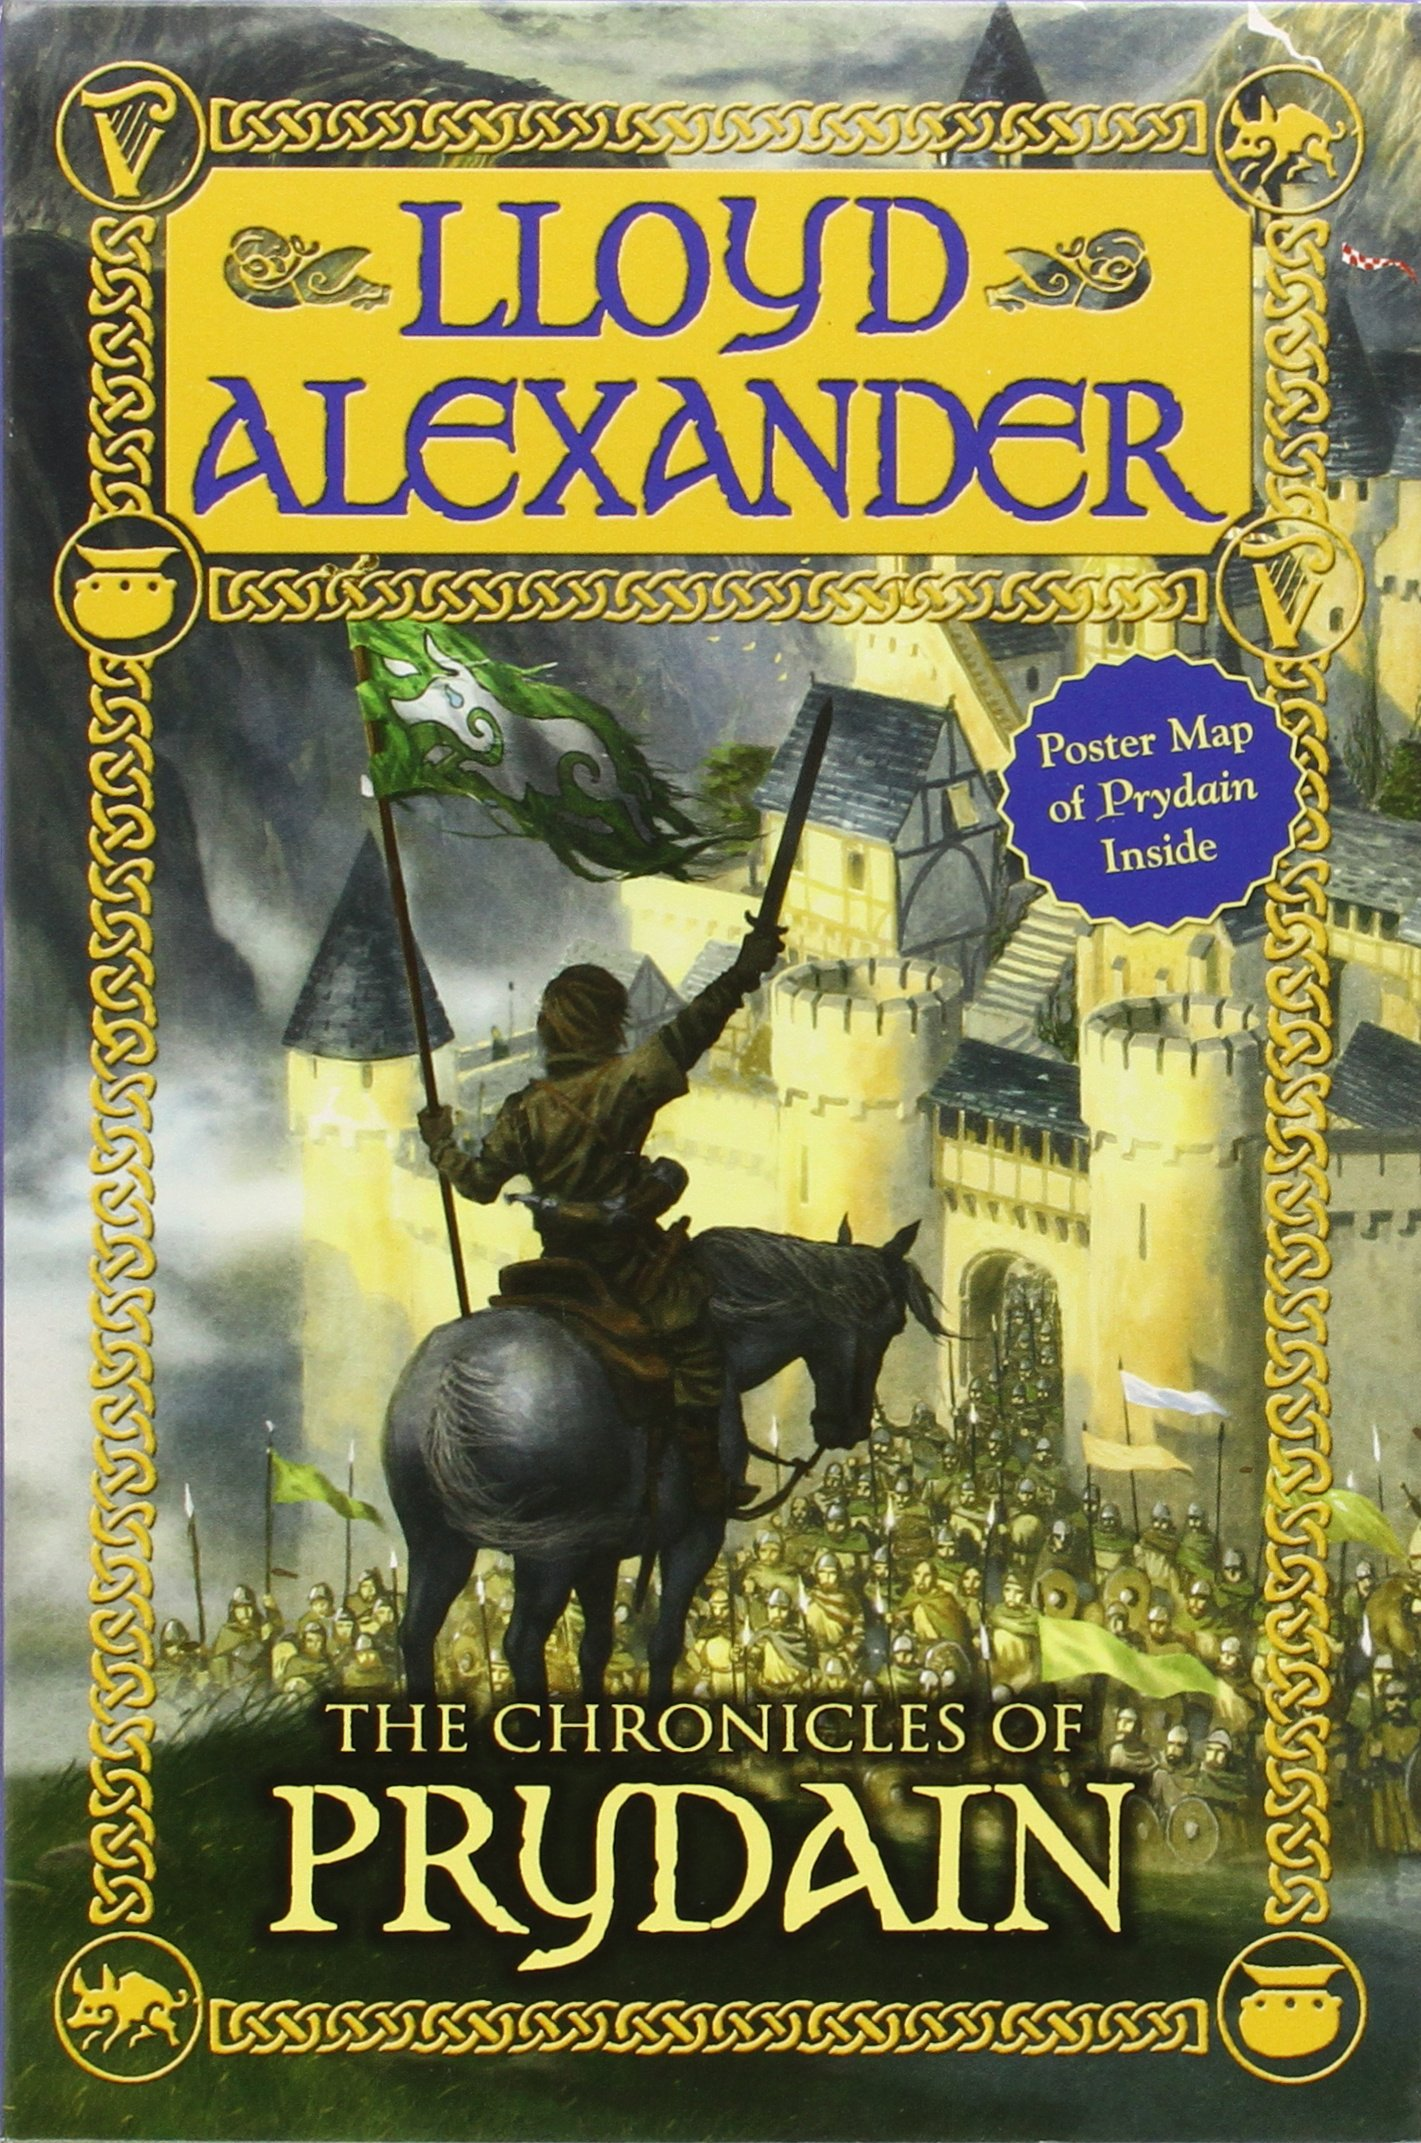 Image result for Prydain Chronicles